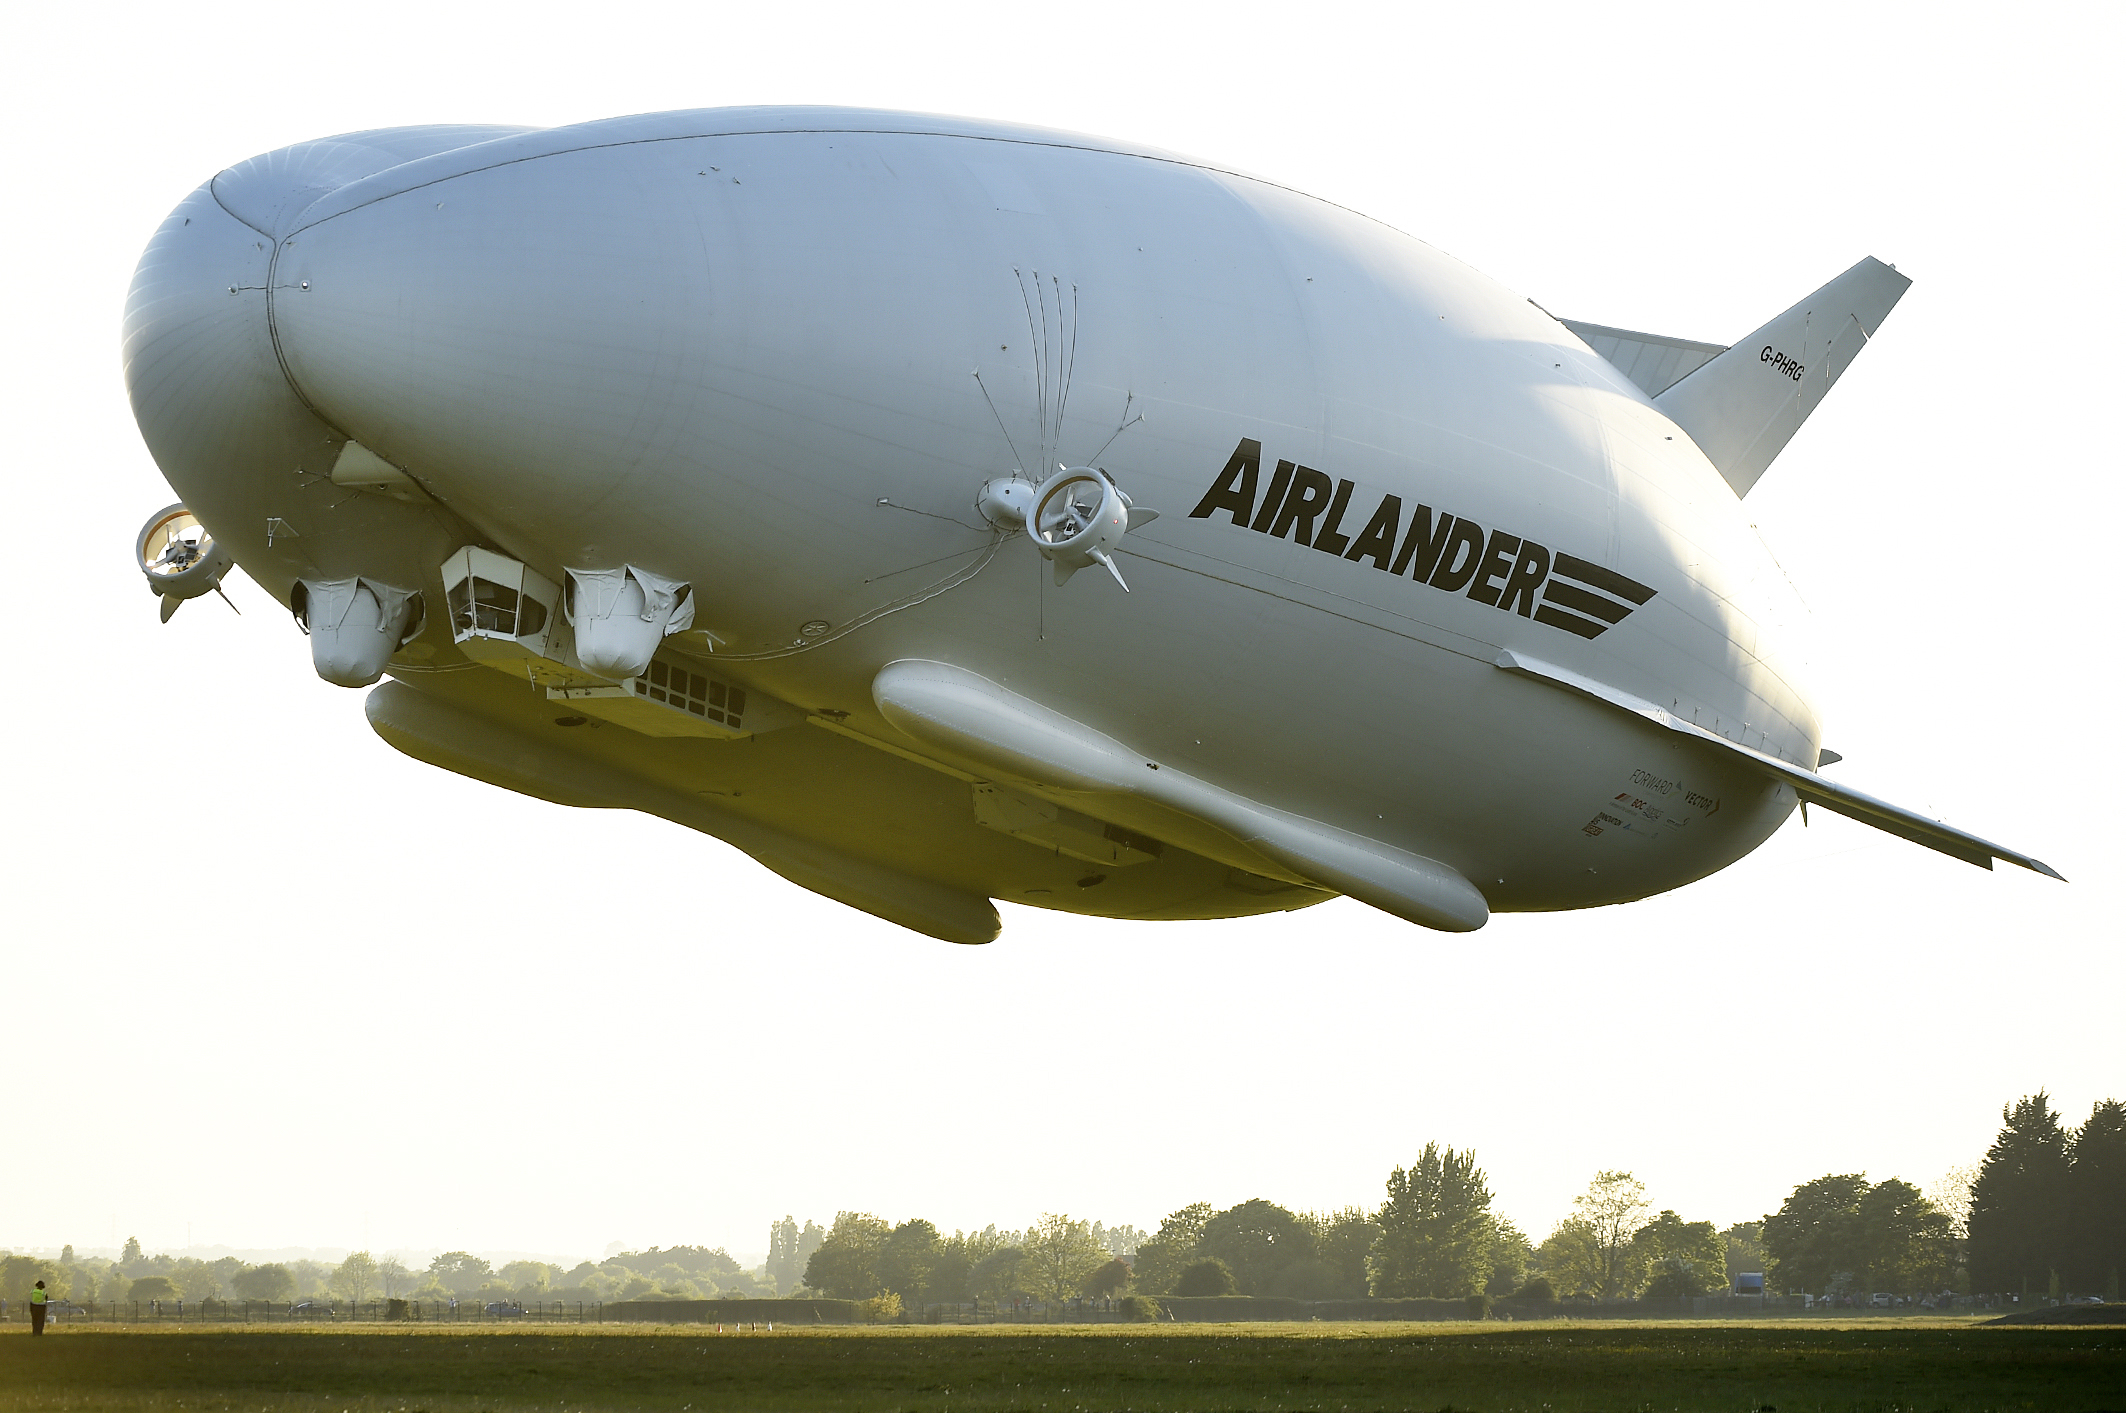 Airlander 10 Takes To Skies For First Time Since Crash